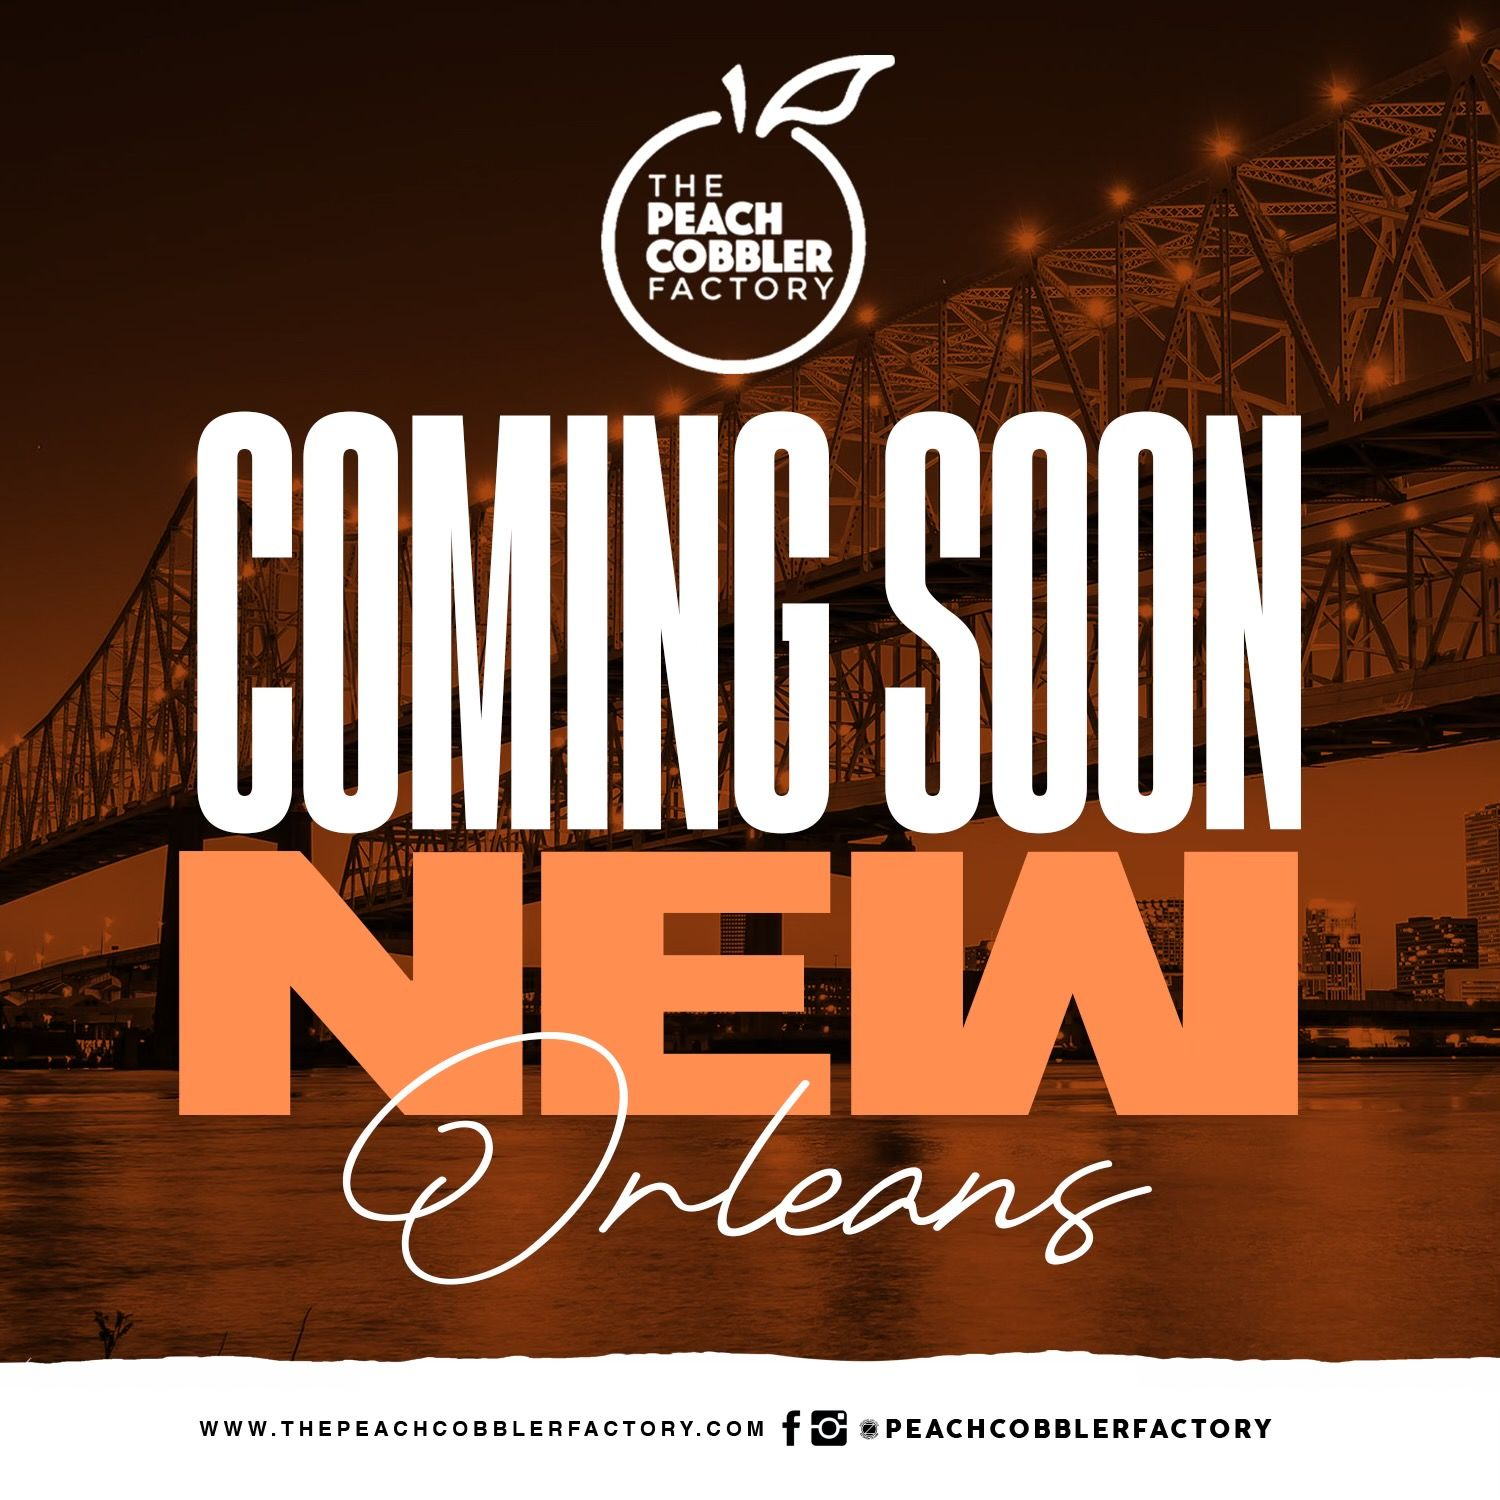 The Peach Cobbler Factory Continues Rapid Expansion With Four New New Orleans Locations